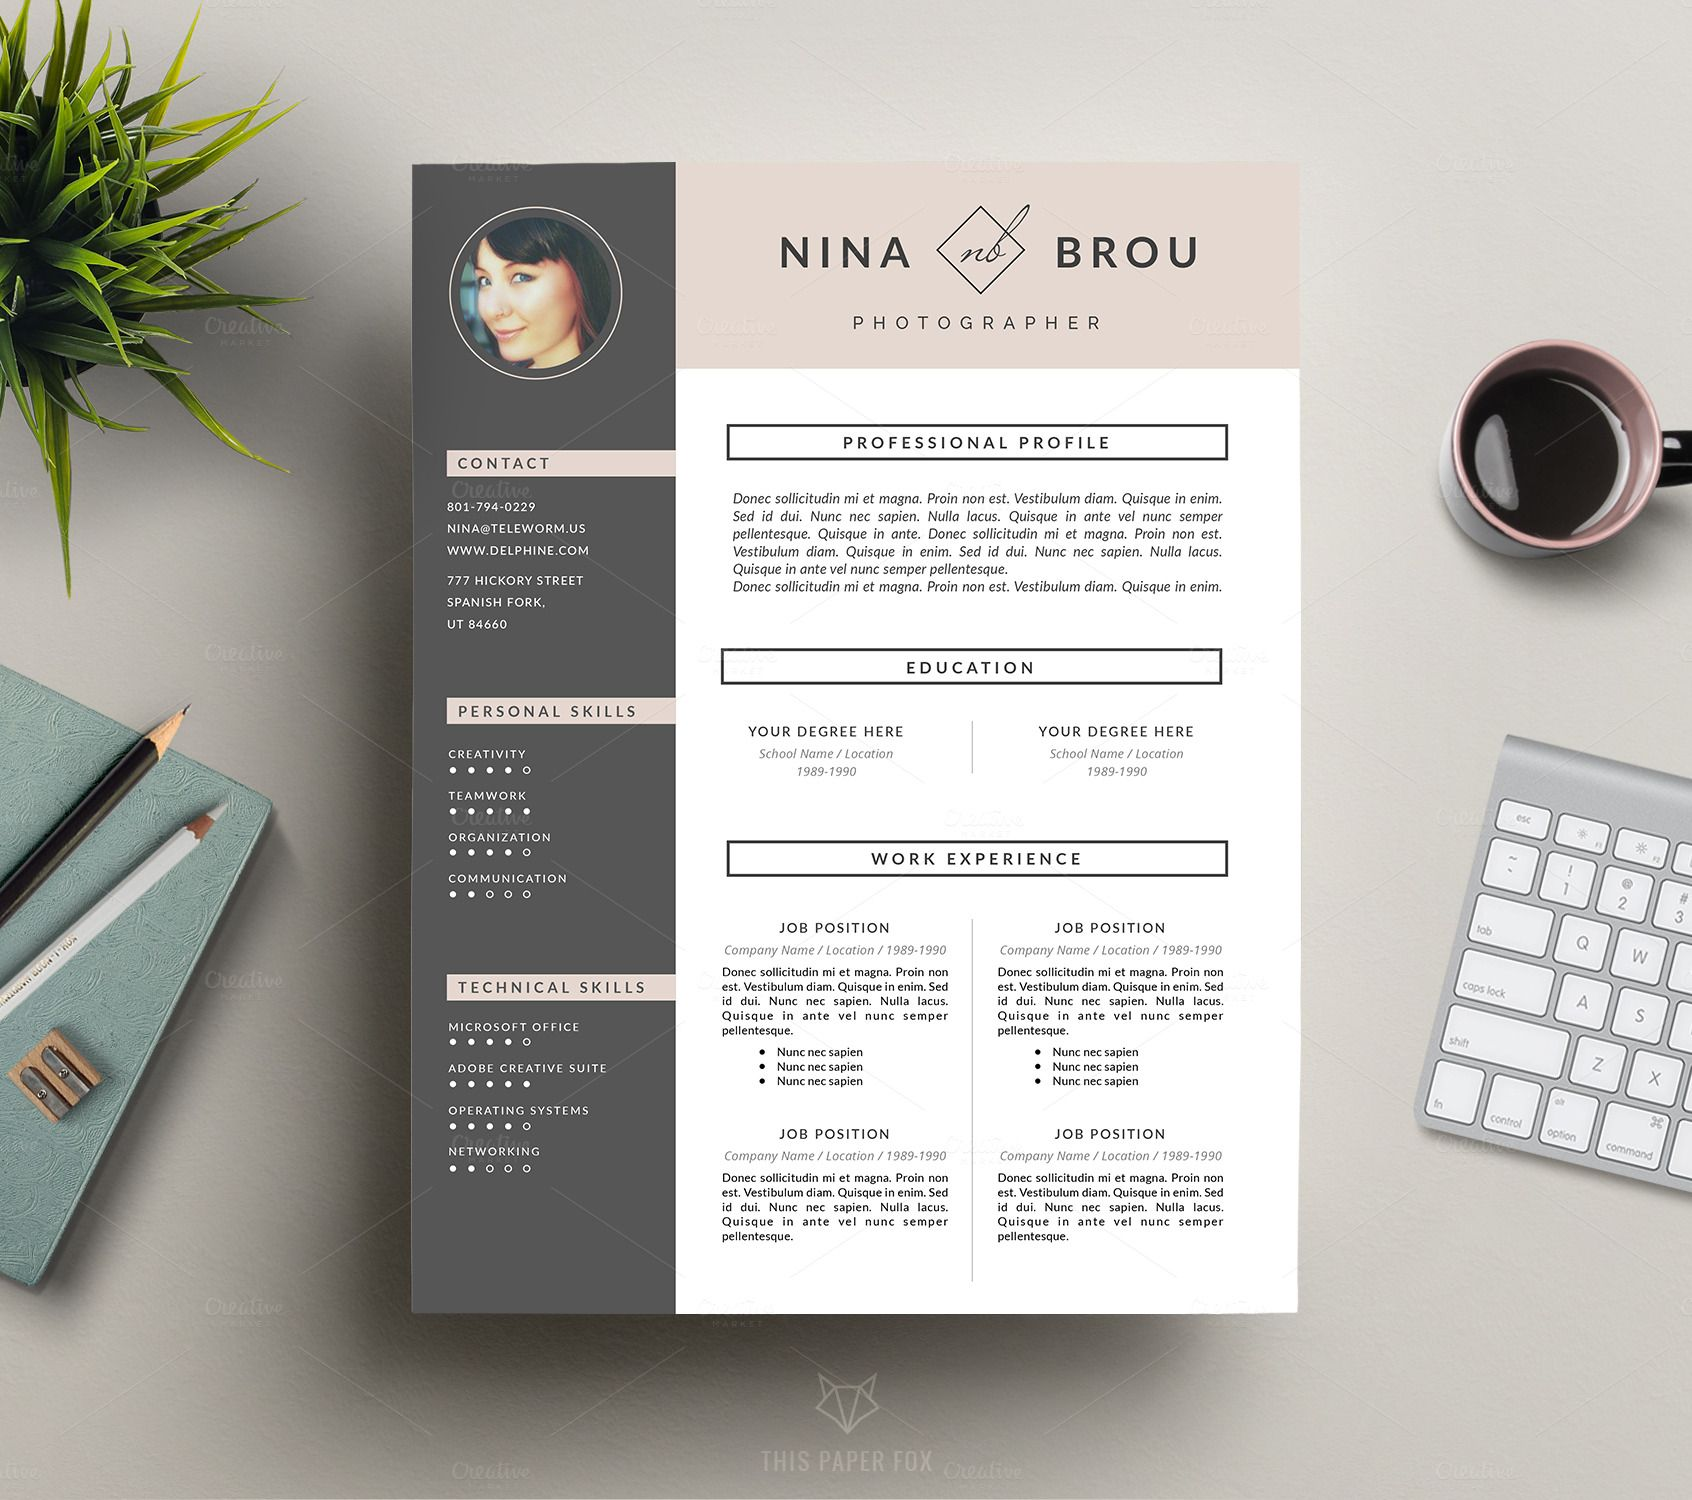 Feminine resume design cv by this paper fox on creativemarket feminine resume design cv by this paper fox on creativemarket resume design templatecreative yelopaper